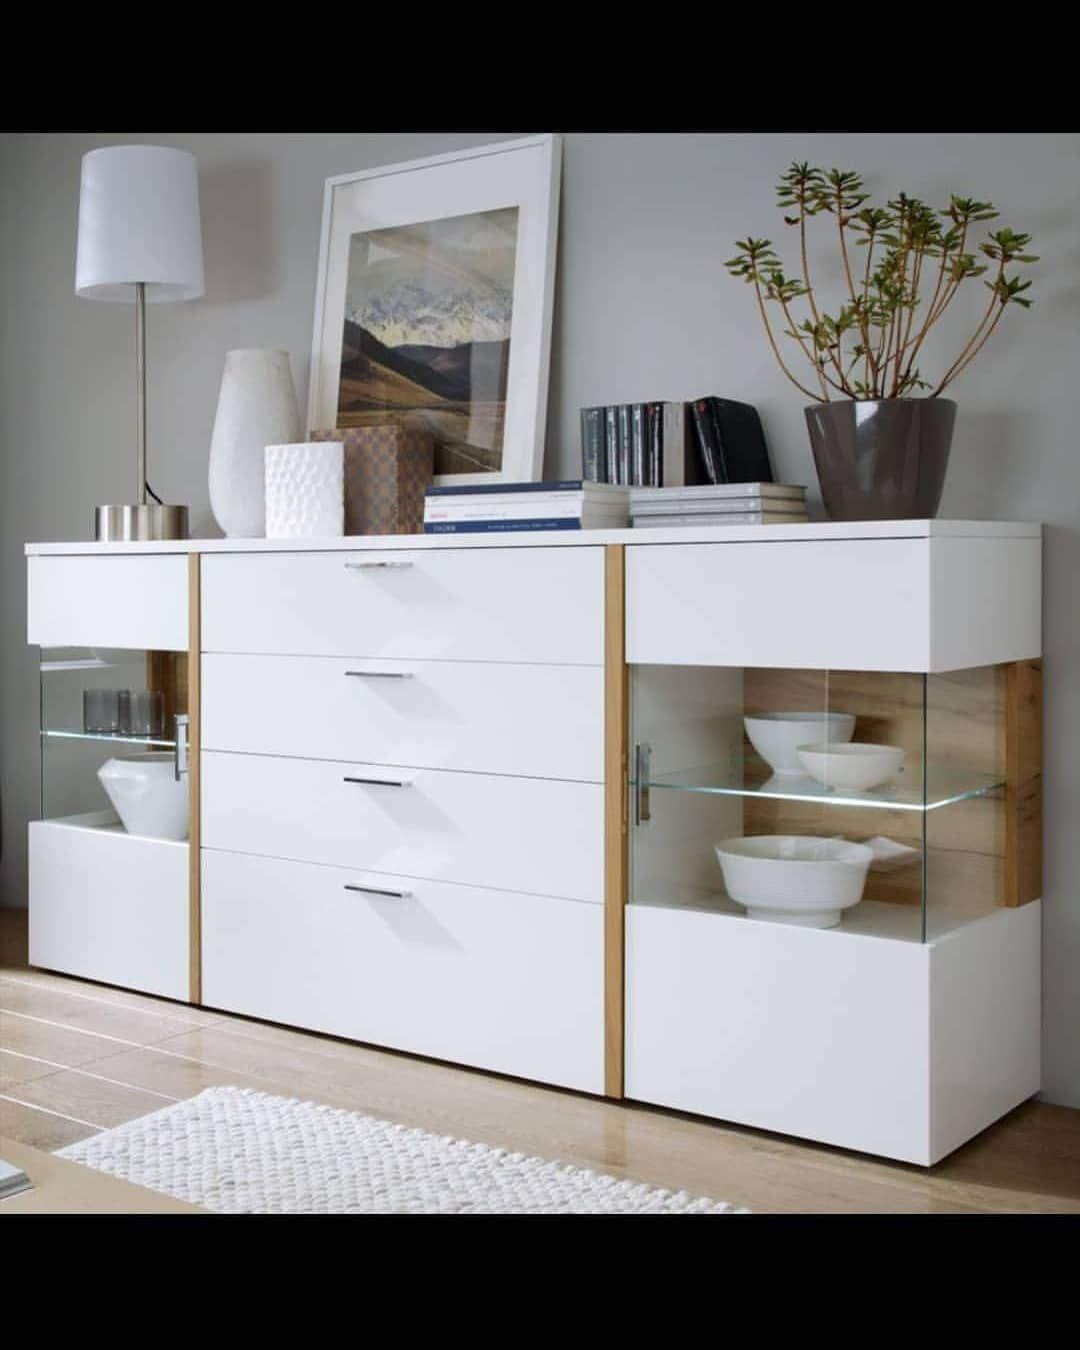 Pin By Bunny Vonsleeps On Anew Sideboard In 2020 Dining Room Furniture Design Crockery Unit Design Crockery Cabinet Design